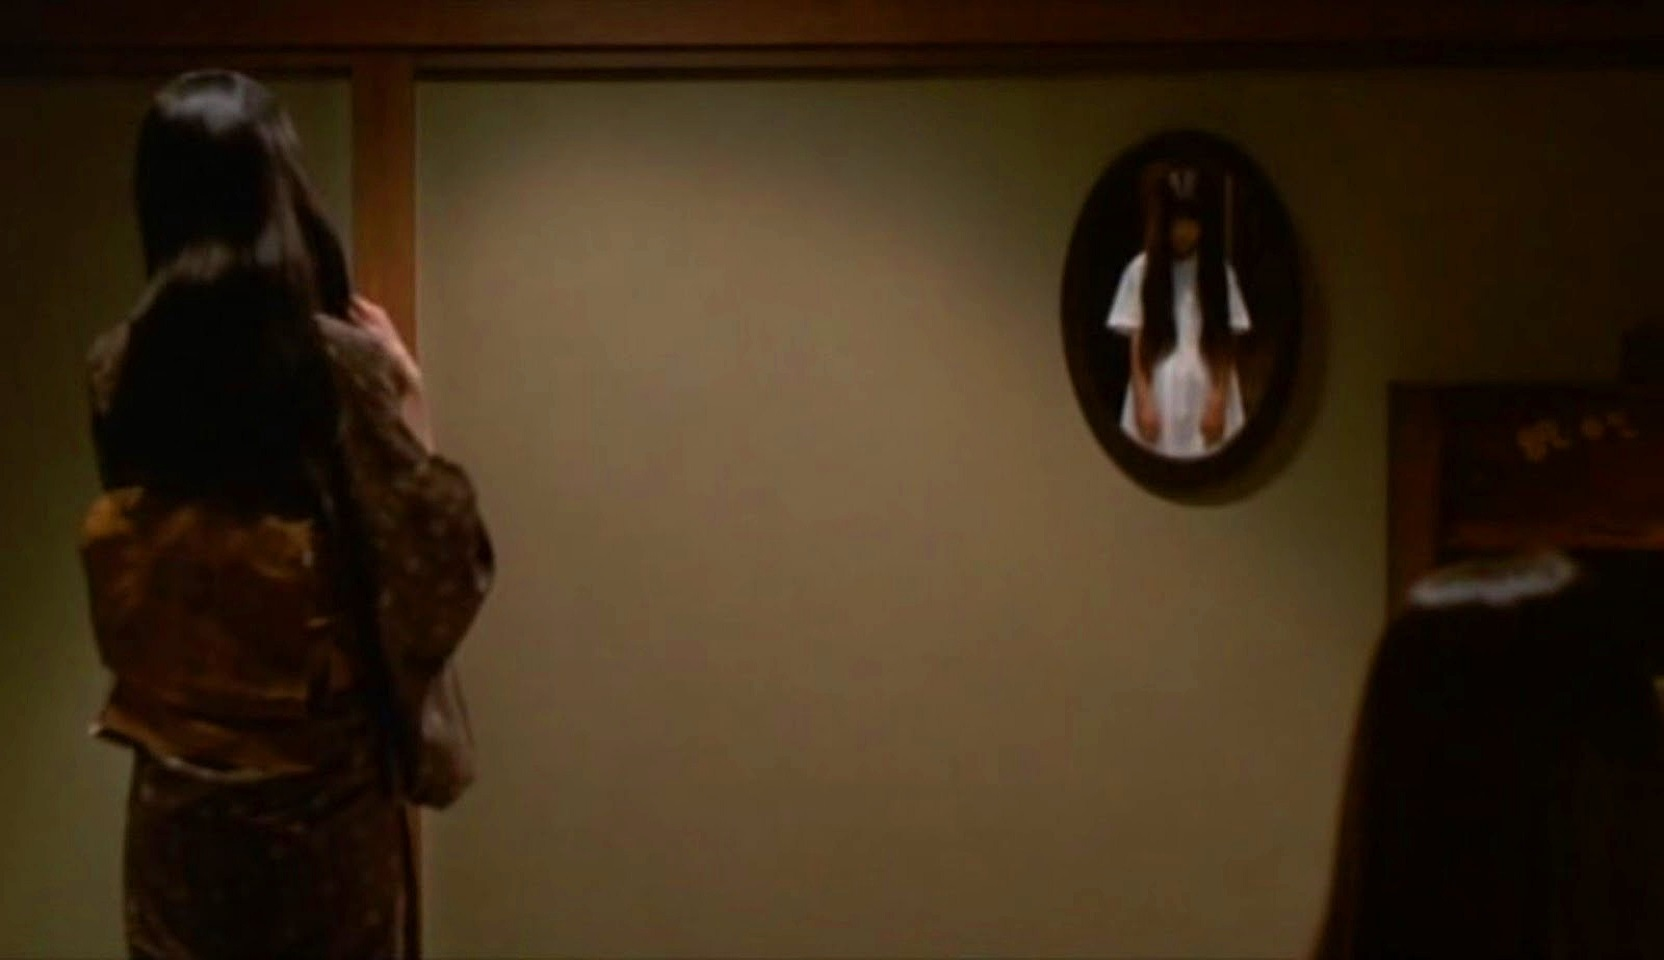 Ghostly figures in the mirror in Ring 2 (1999)